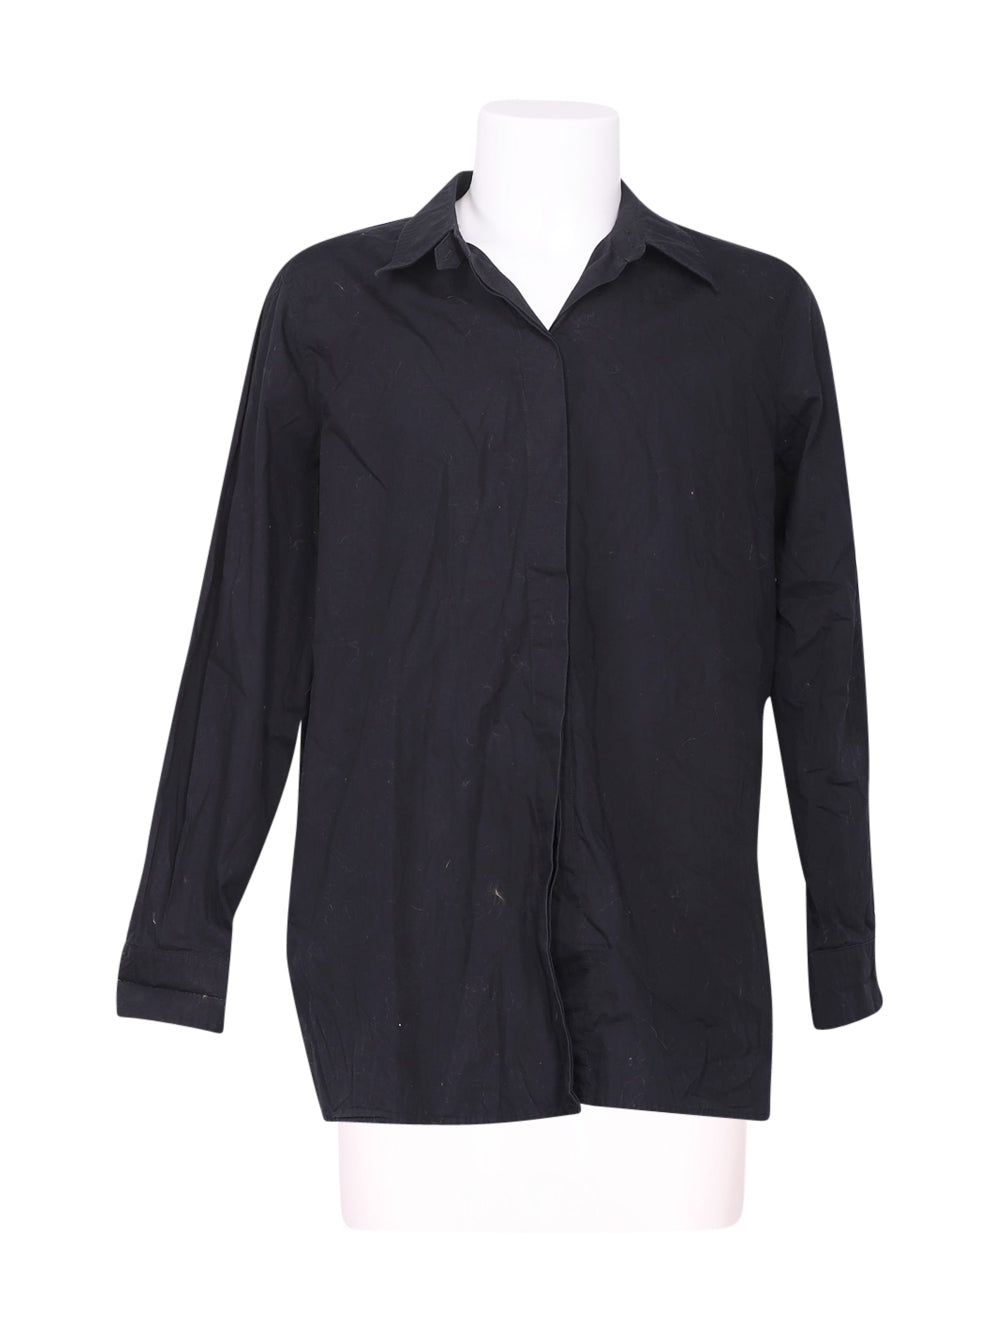 Front photo of Preloved Marina Rinaldi Black Man's shirt - size 40/L